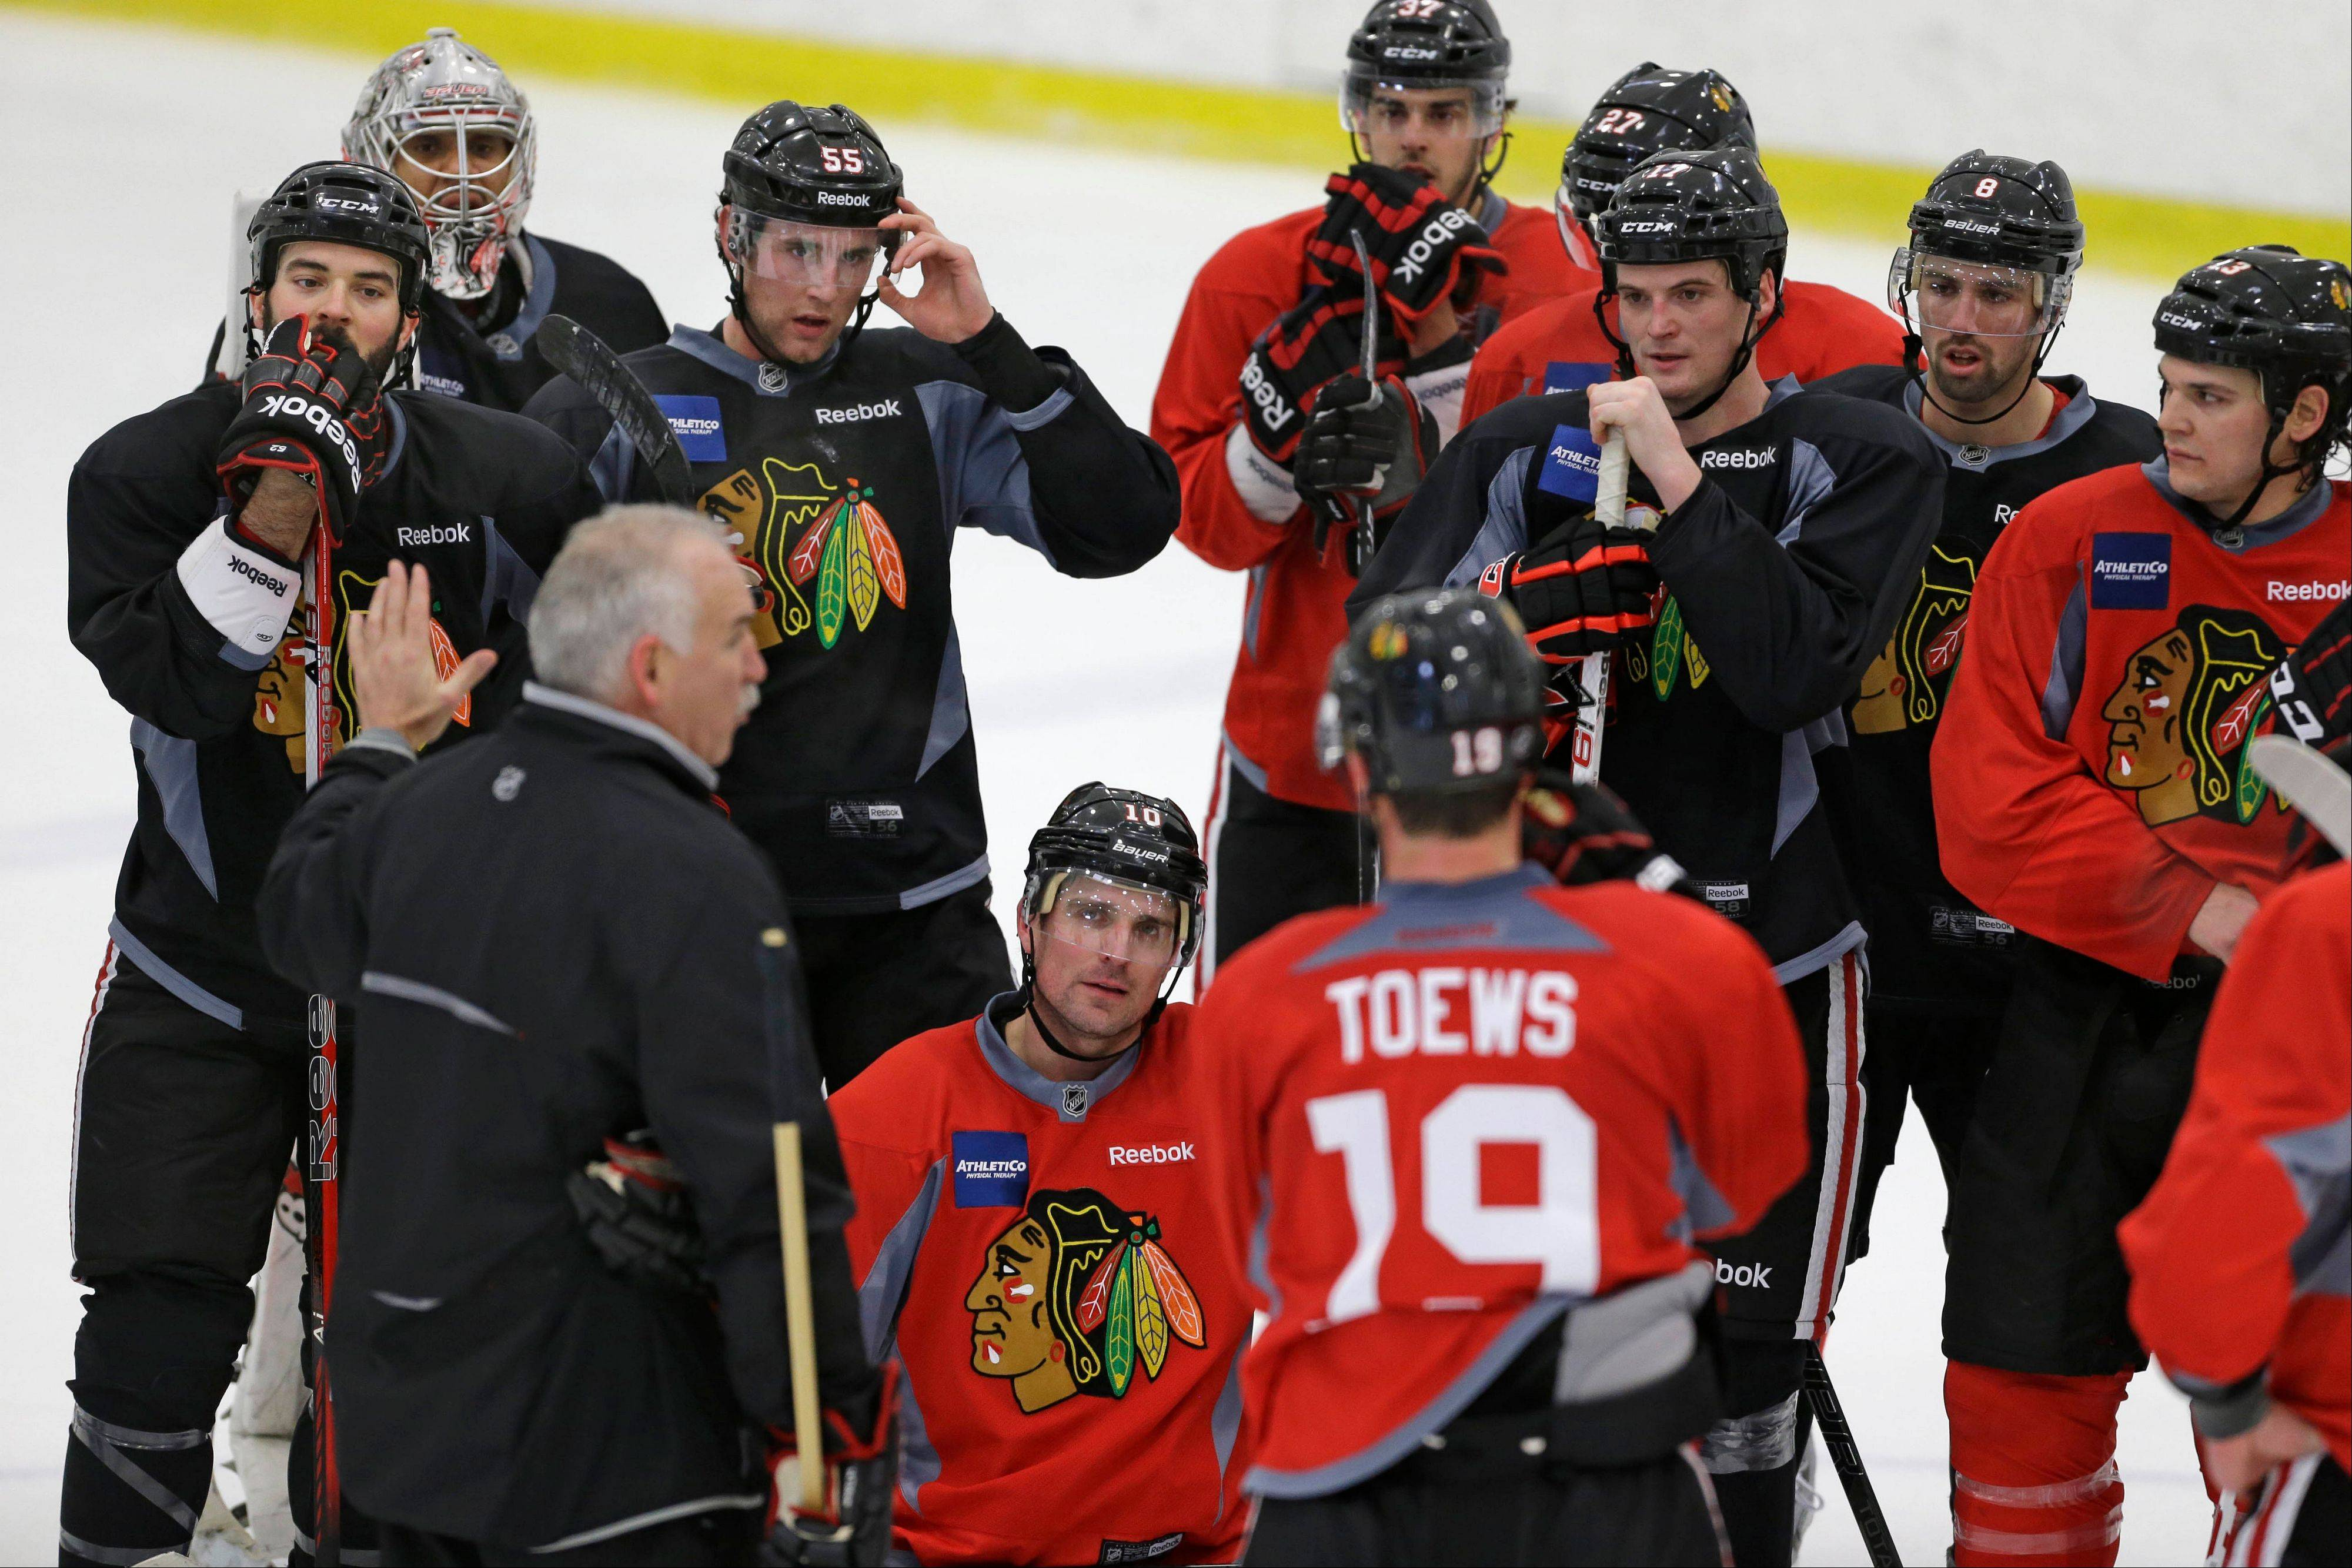 Blackhawks coach Joel Quenneville, bottom left, speaks to his team during Monday's practice.